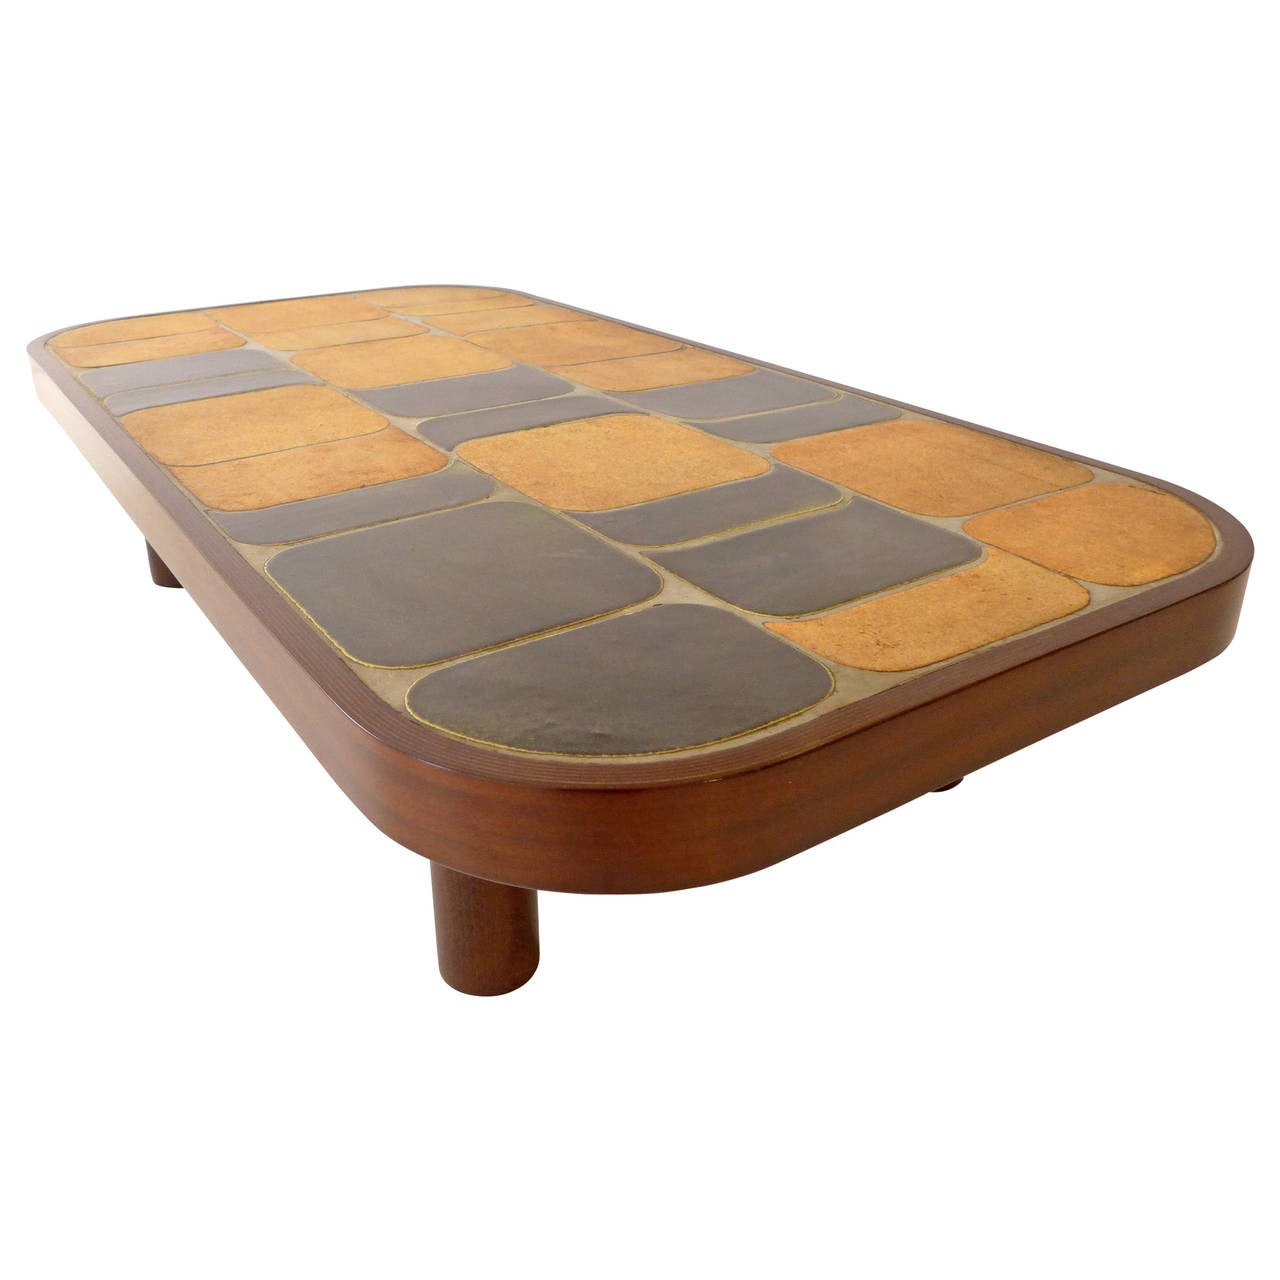 Roger Capron Ceramic Tile Cocktail Table At 1stdibs